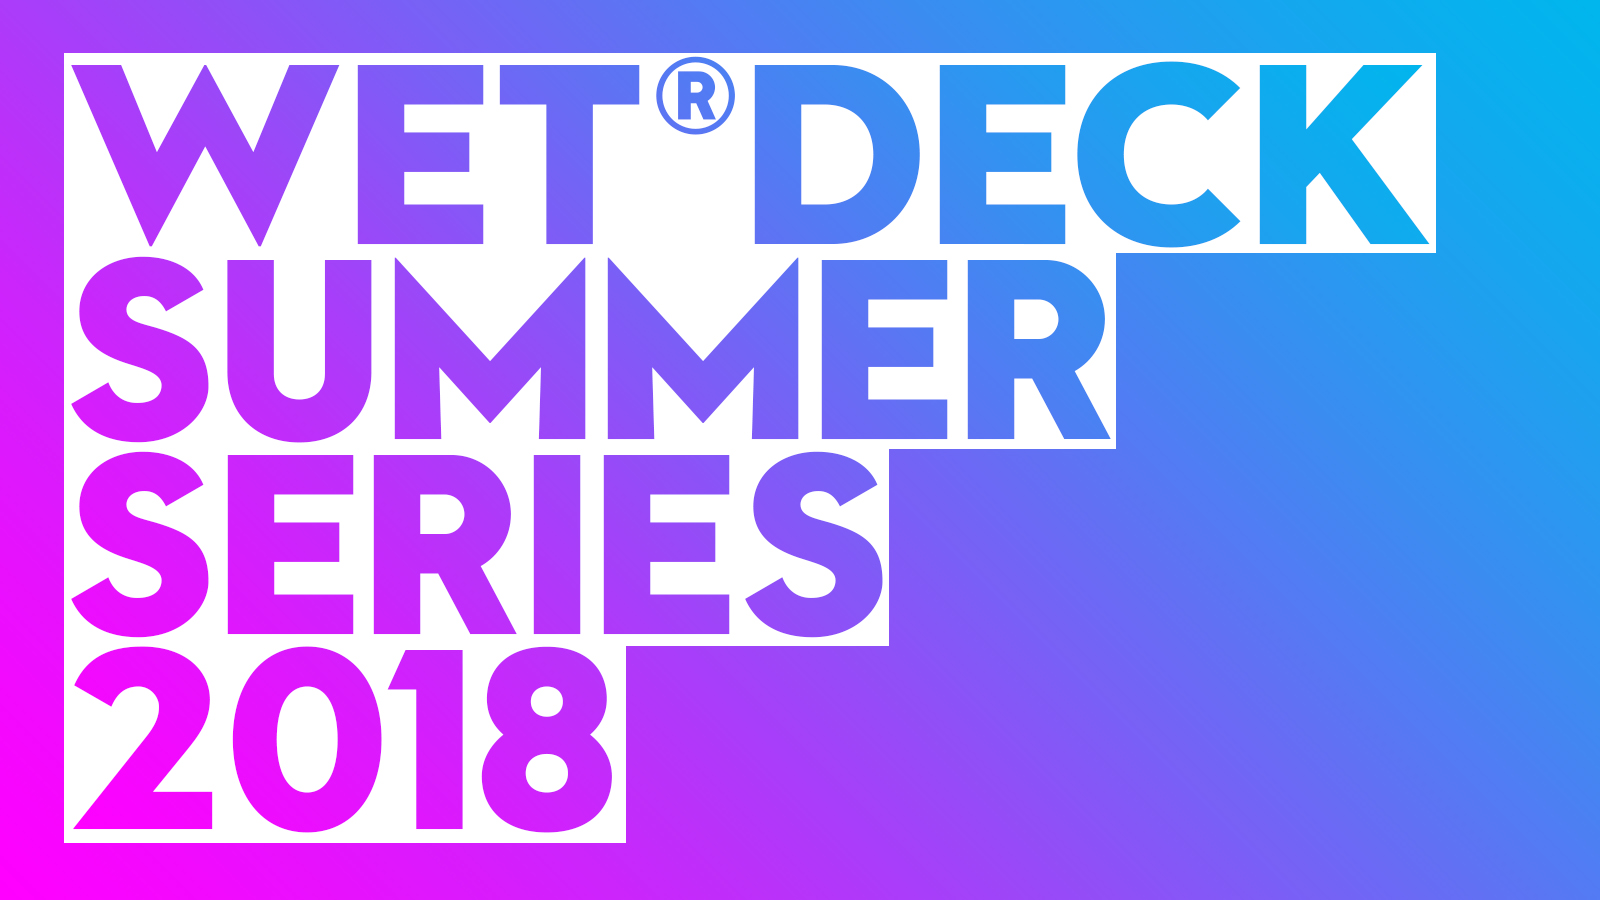 Wet Deck Summer Series 2018 at W Barcelona